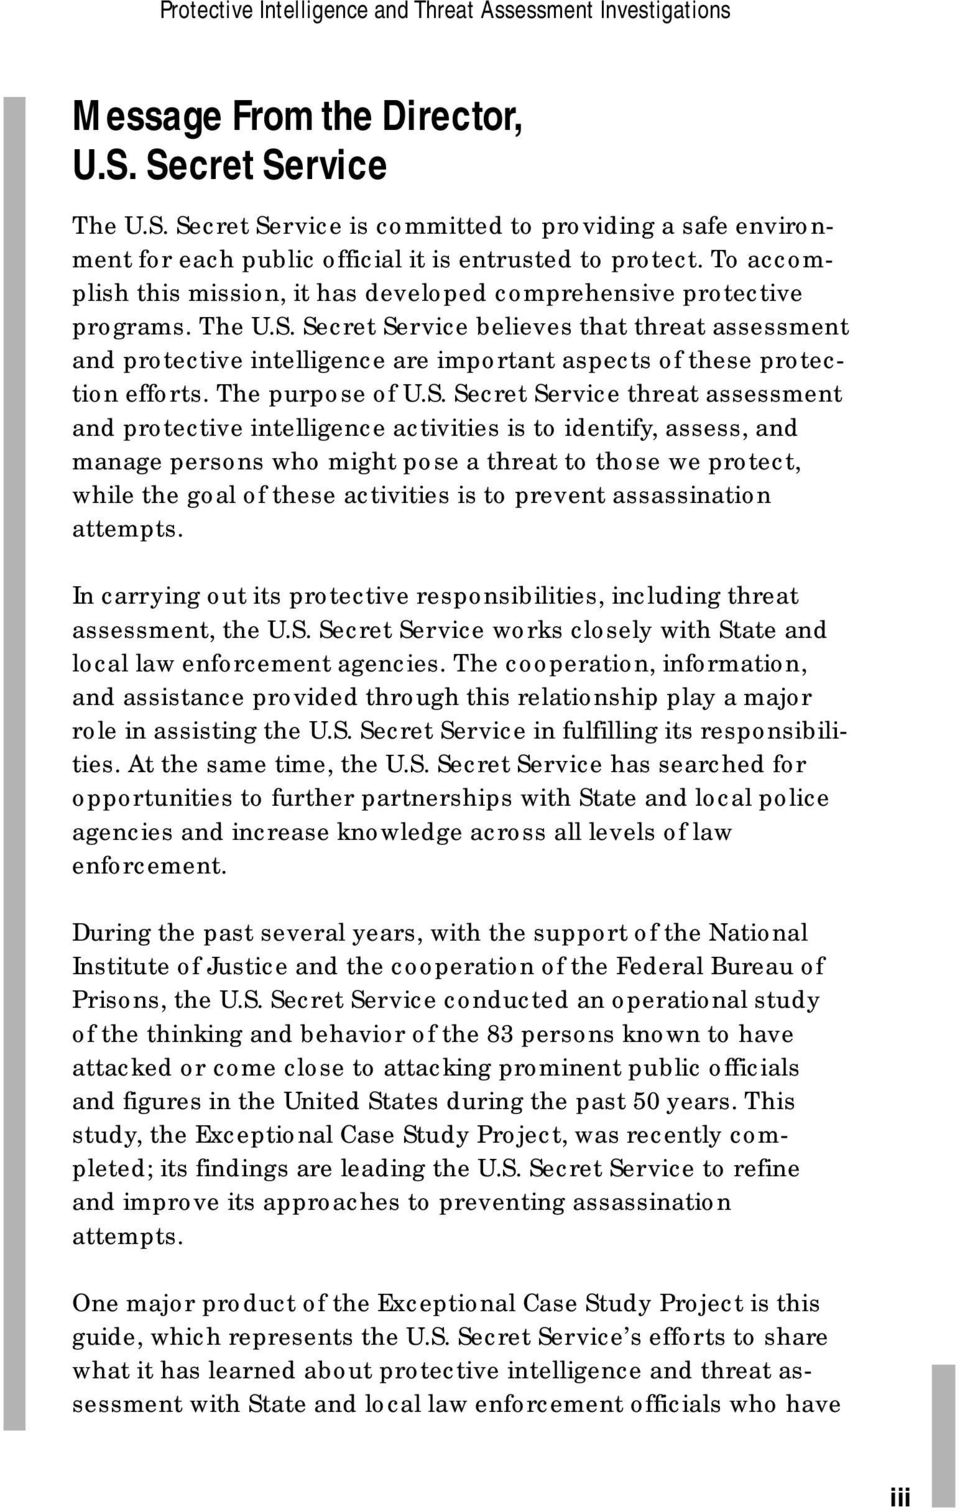 Secret Service believes that threat assessment and protective intelligence are important aspects of these protection efforts. The purpose of U.S. Secret Service threat assessment and protective